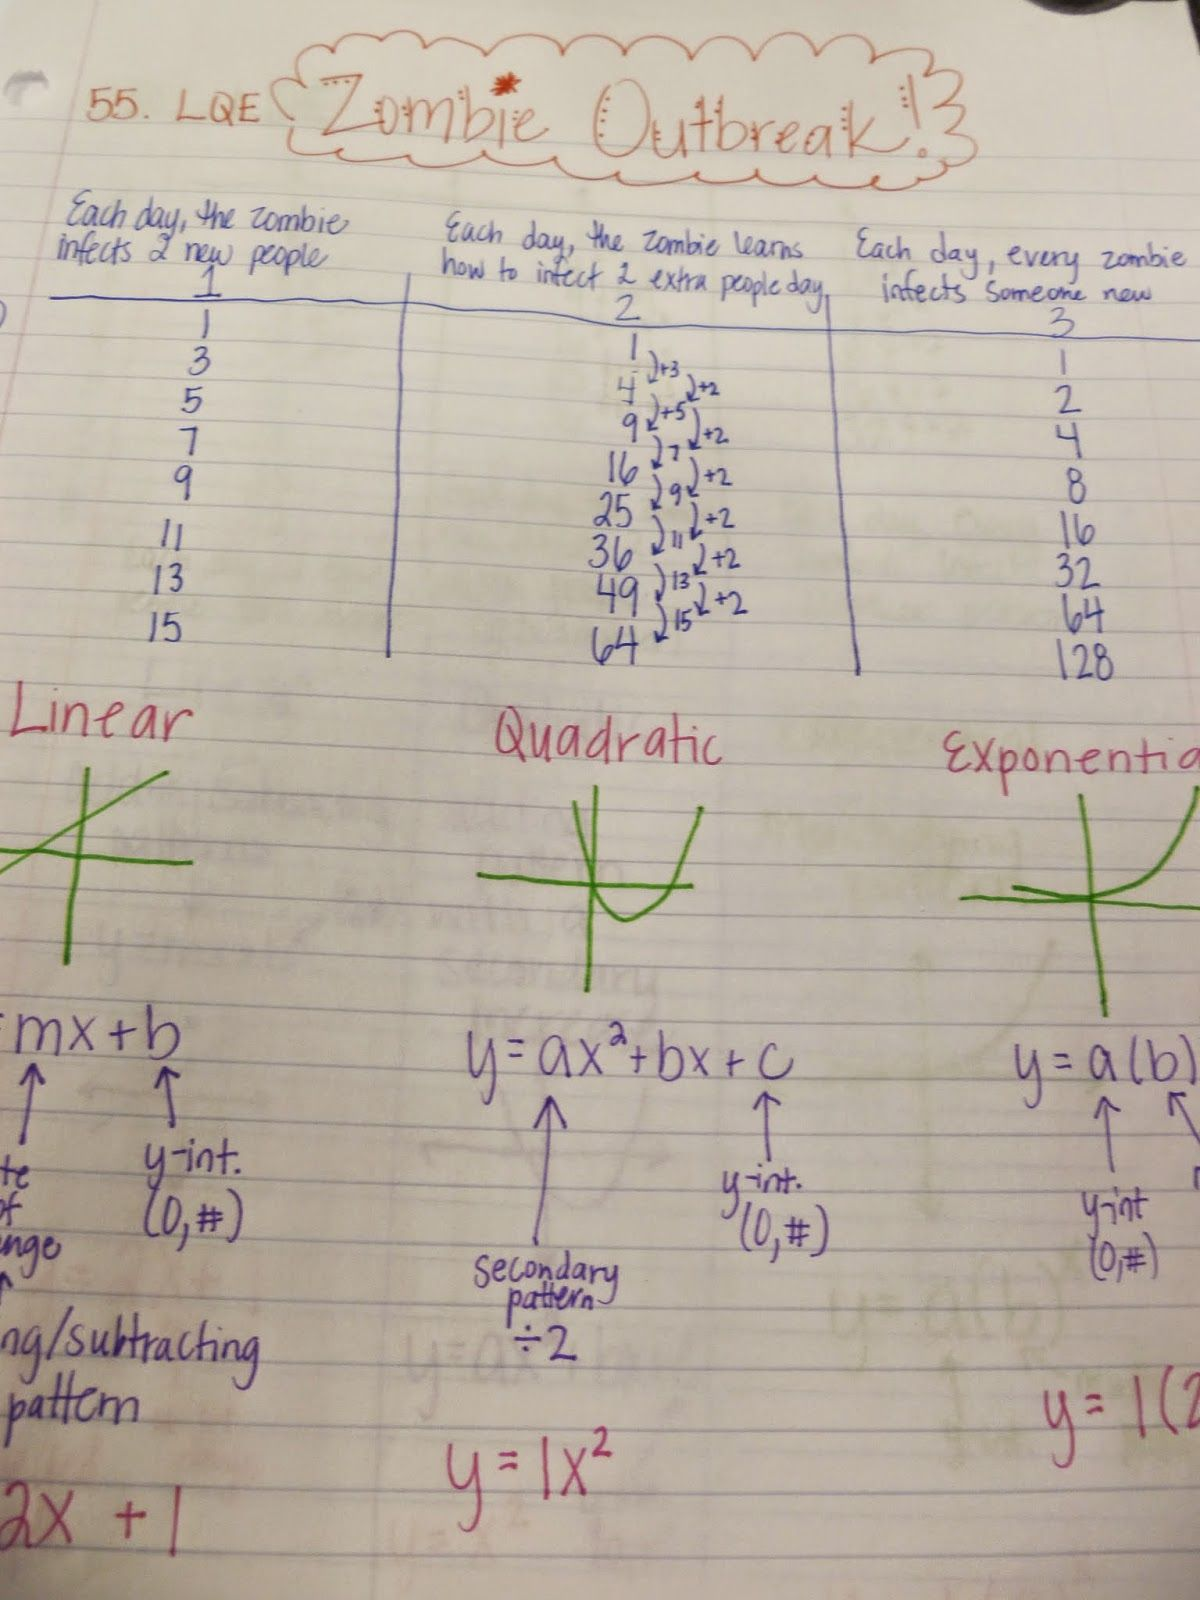 Learning With Tape Friday Freebies Comparing Linear Quadratic Exponential Functions